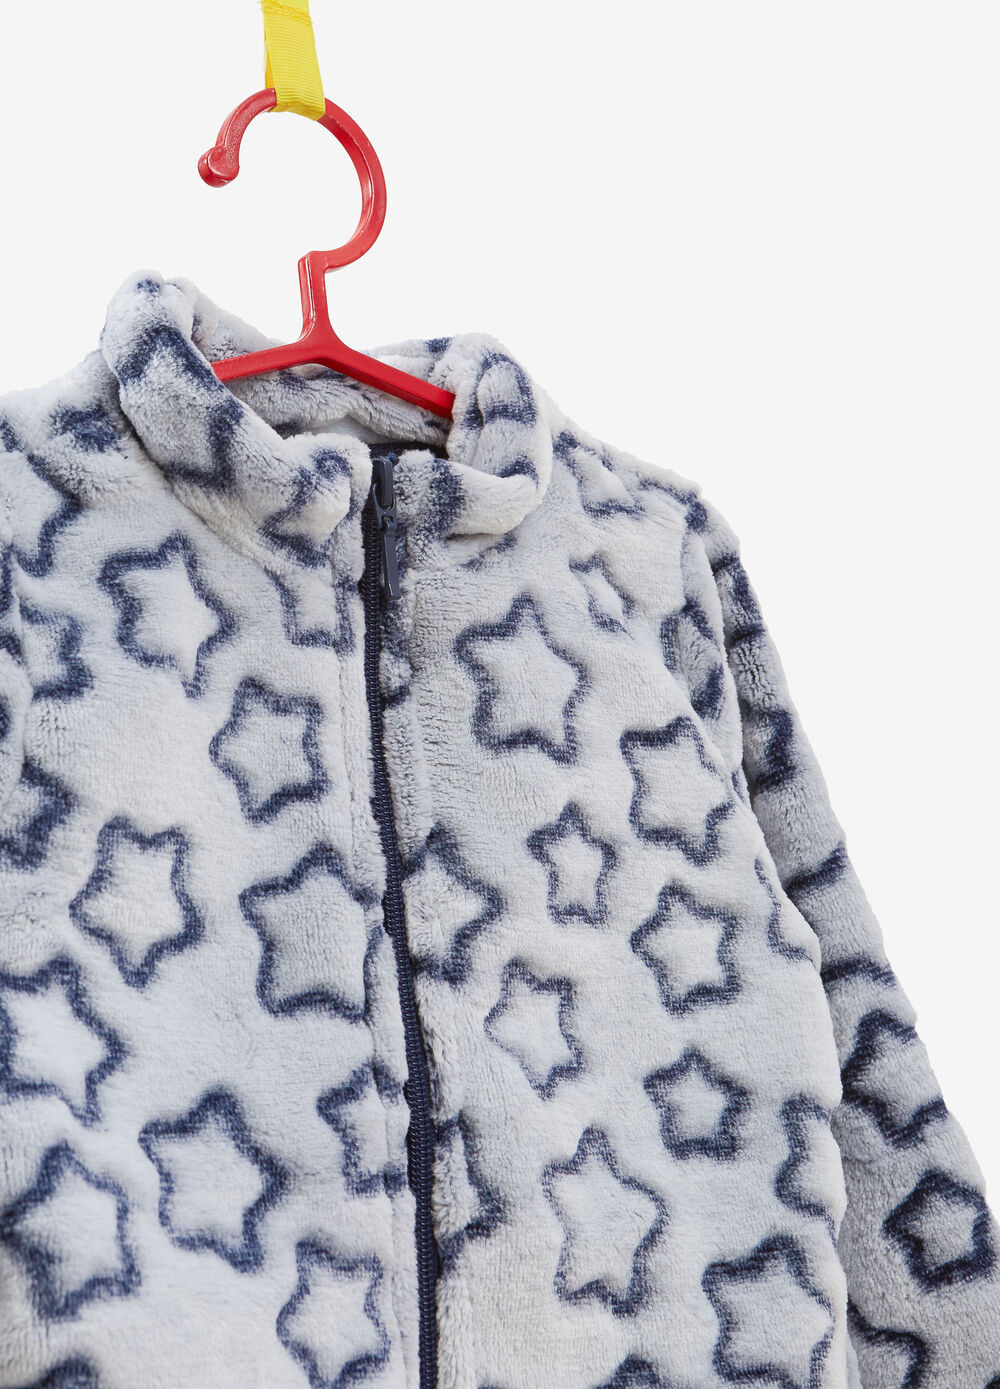 Sweatshirt with high neck and star pattern